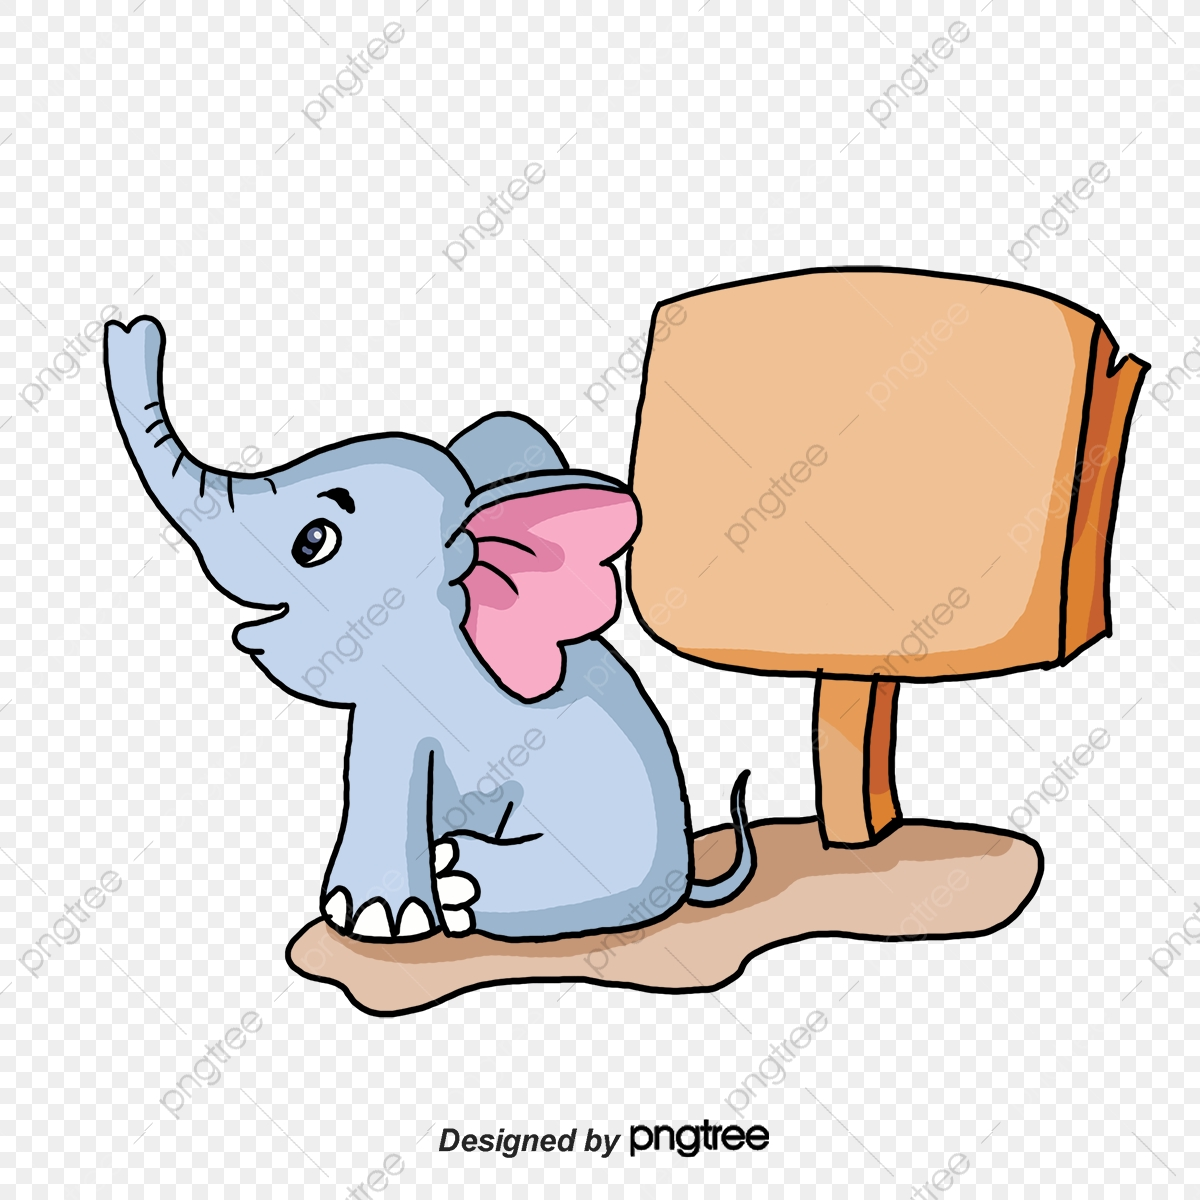 Sit on the baby. Floor clipart cute